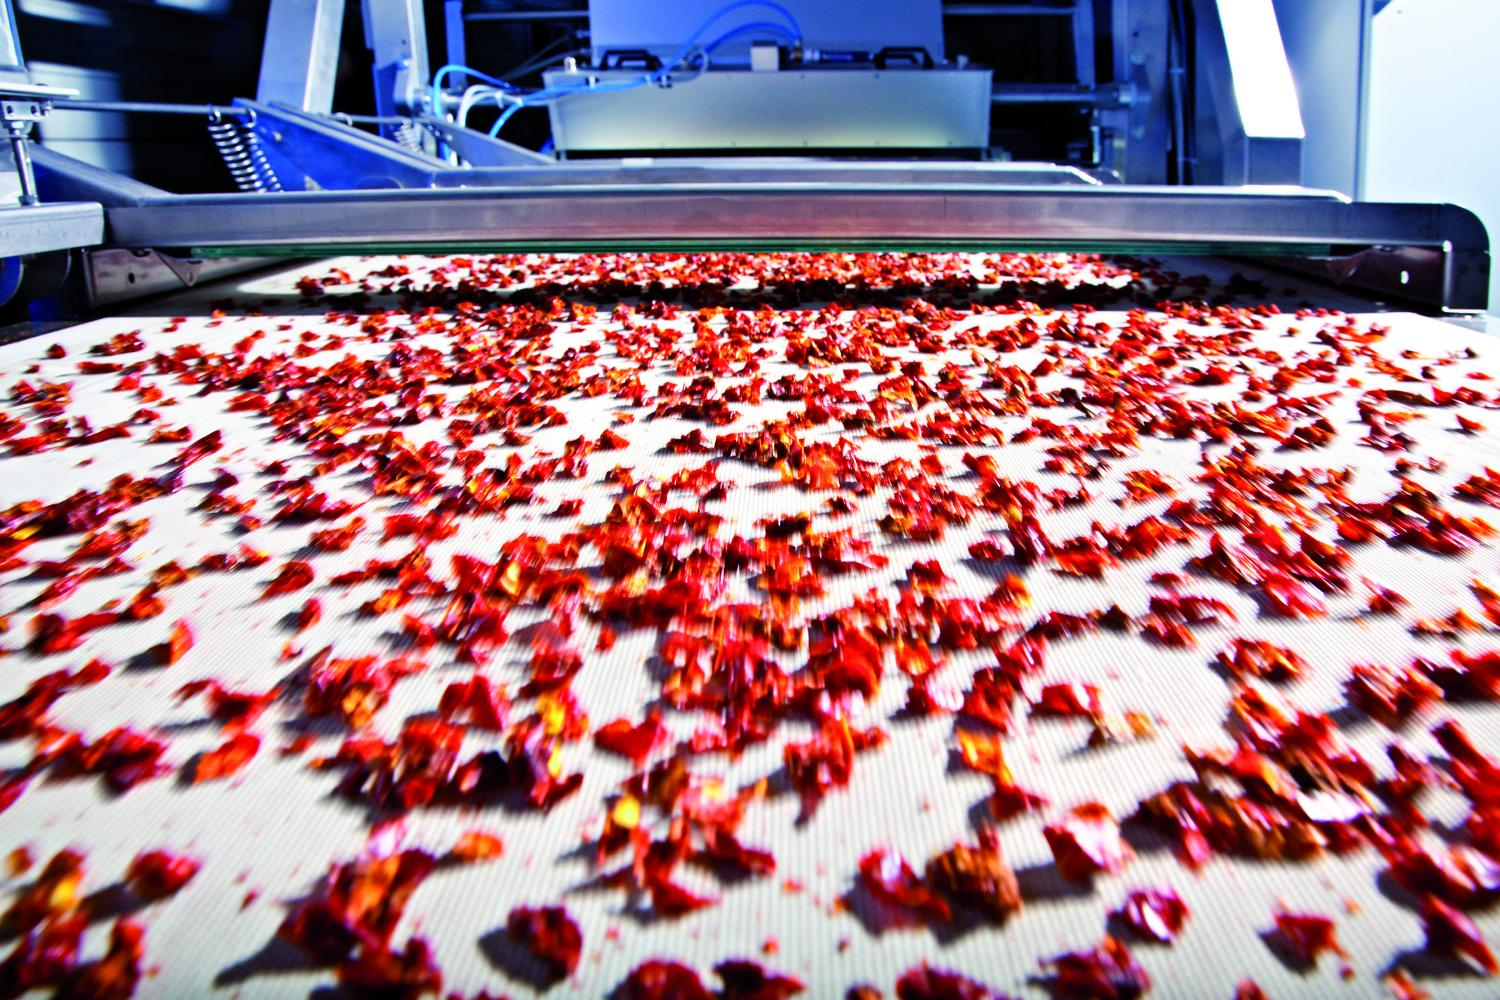 Dried fruit, gravel or waste—all of it is sorted on belt systems by size and quality. Image credit: Fraunhofer IOSB